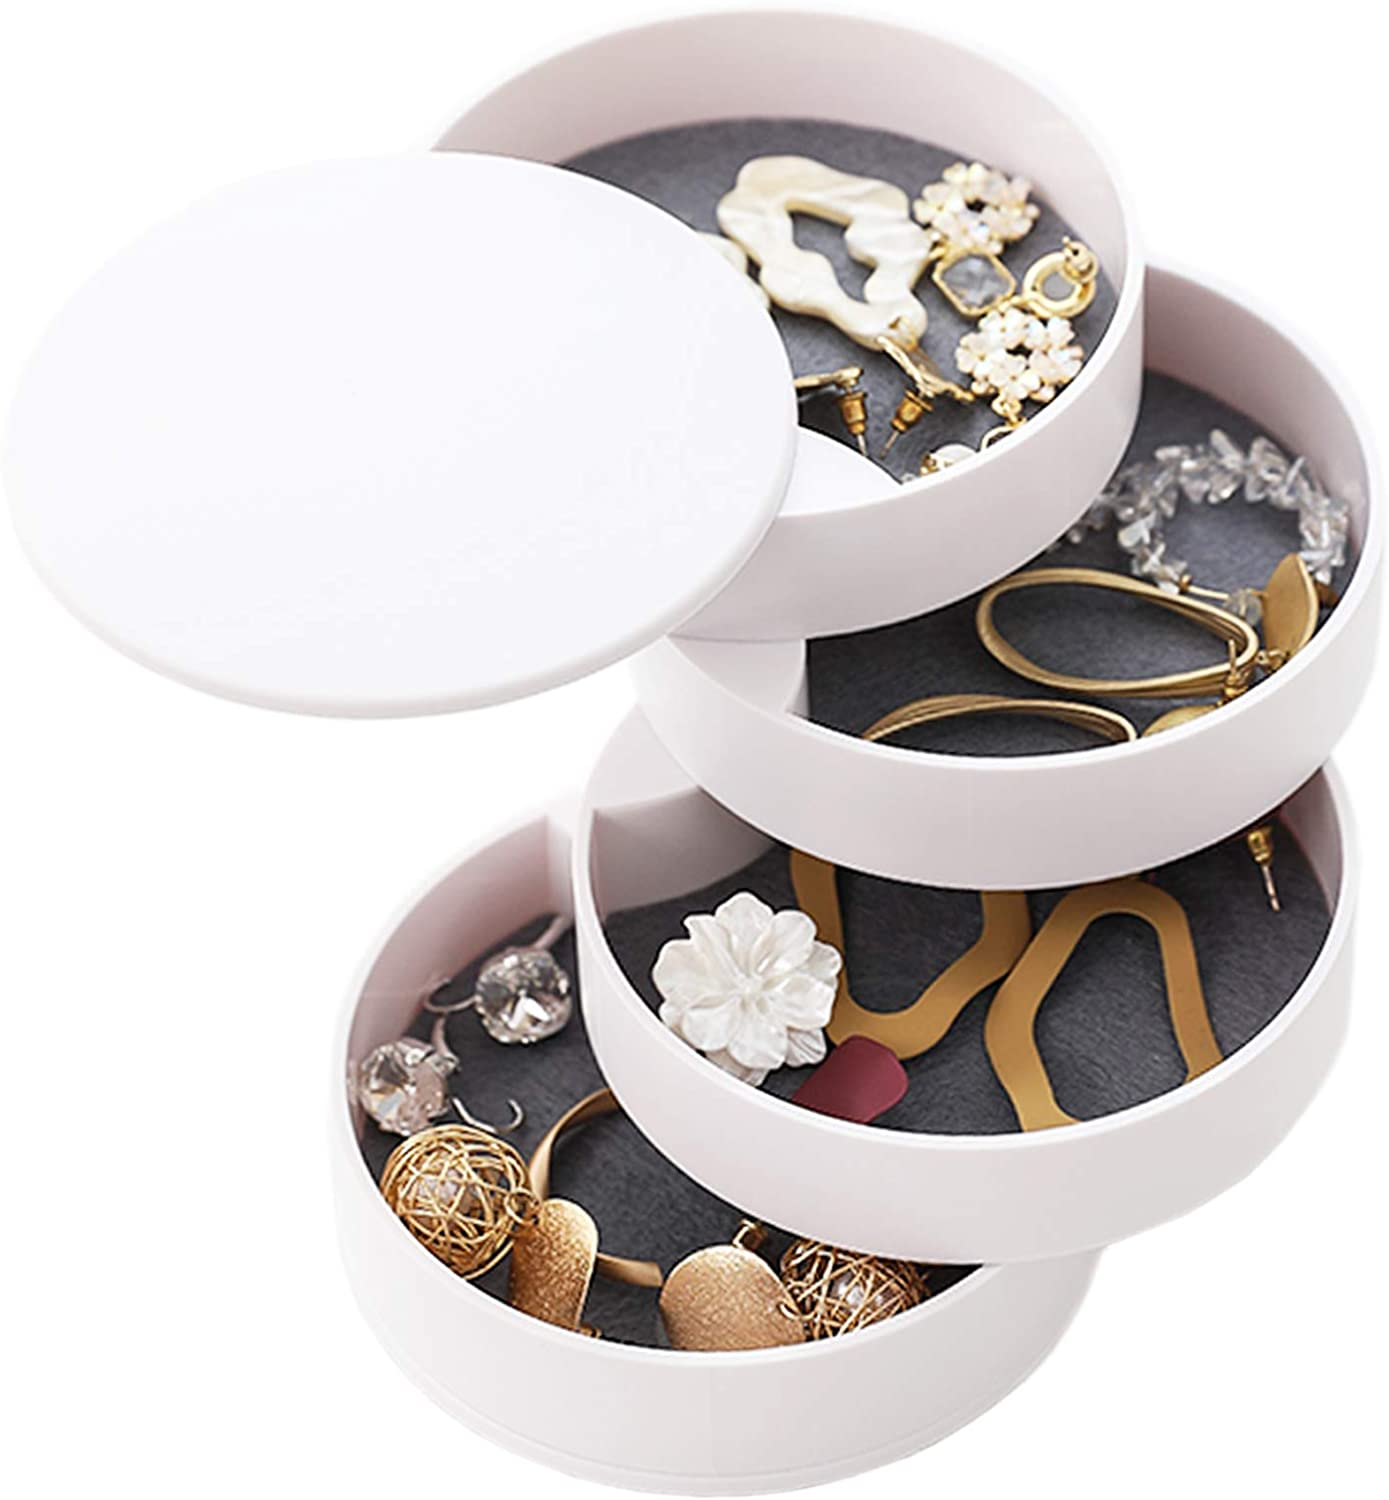 Haawooky White Jewelry Organizer Box 4-Layer 360°Rotating Showcase Storage Organizer Rings,Small Jewelry Storage Box with Lid for Earring Ring Bracelet Lipstick Fits on Dressers Office